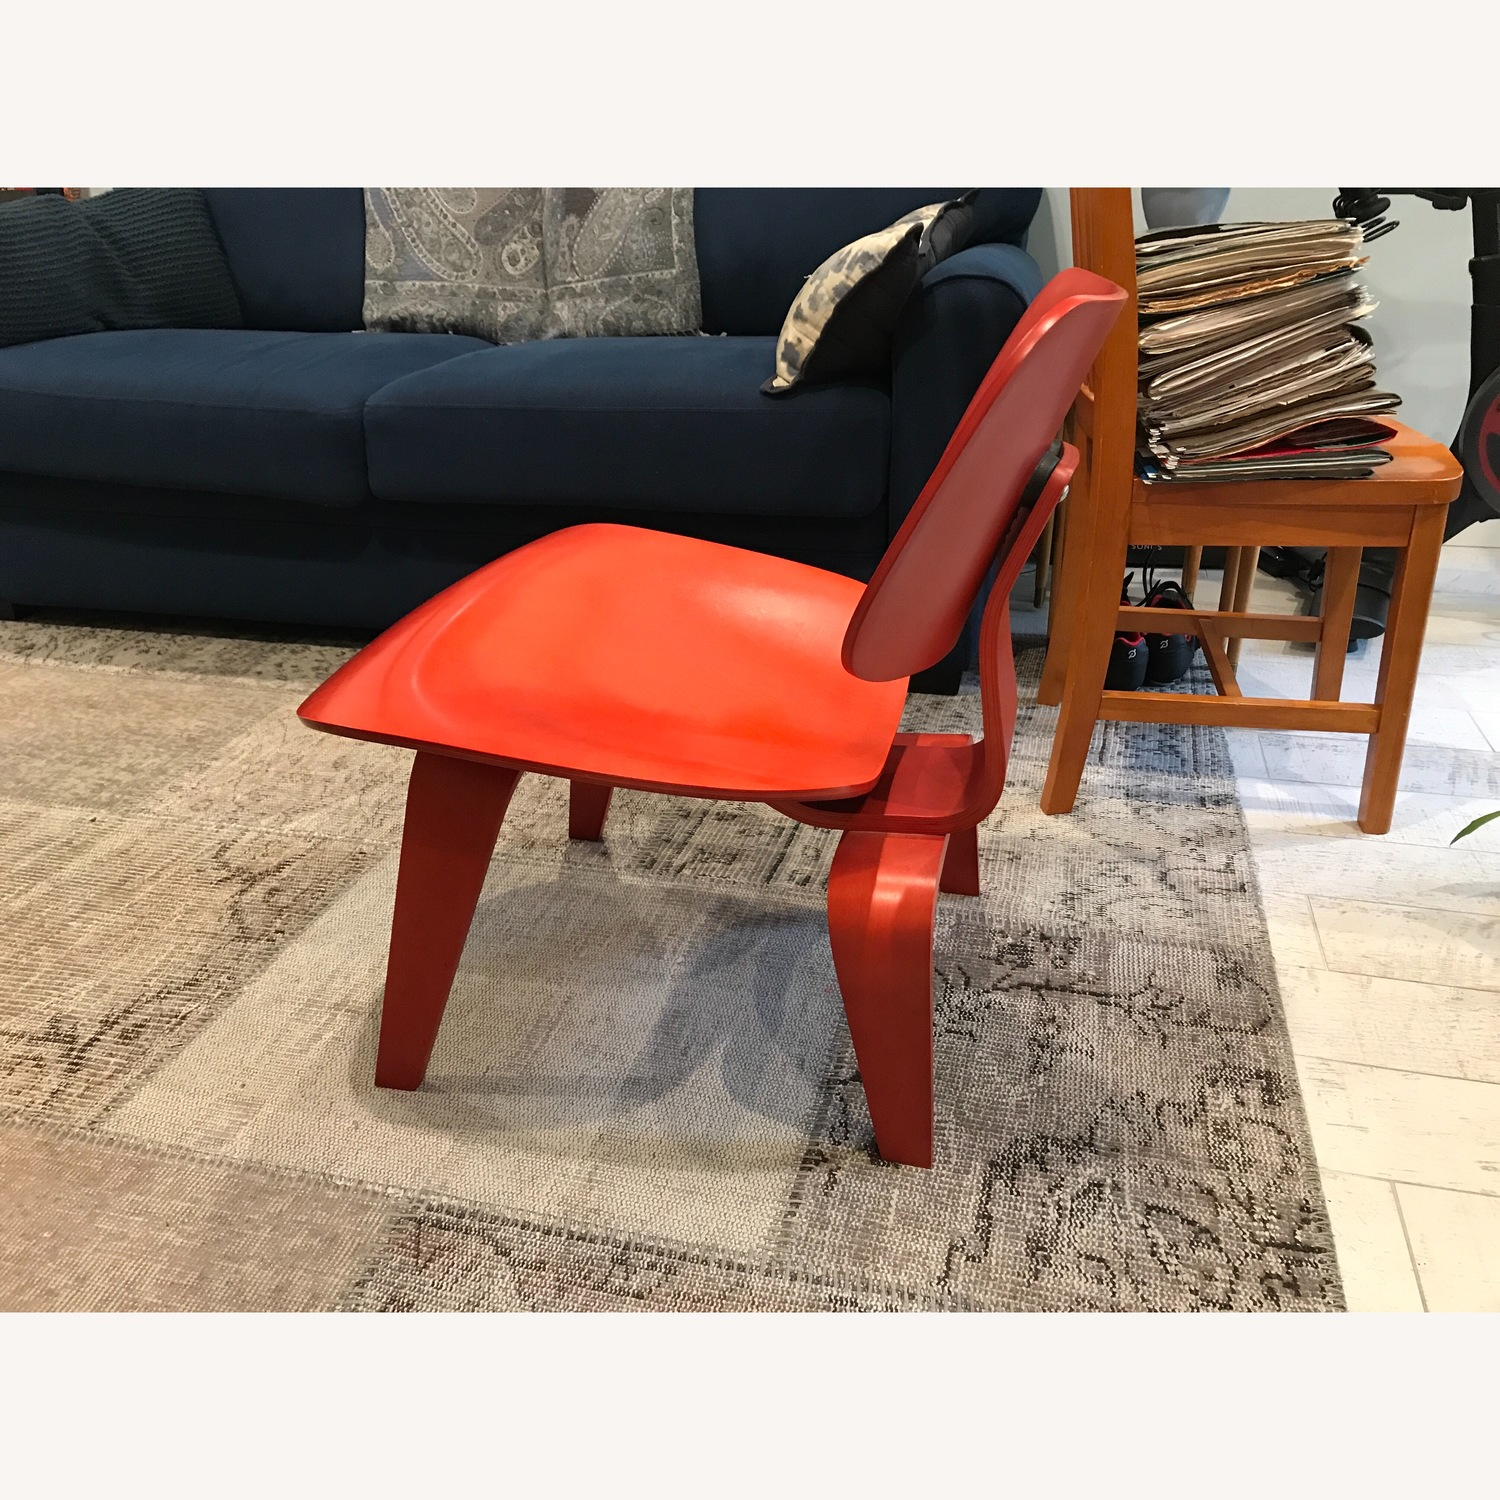 Herman Miller Eames Red Lounge Chair